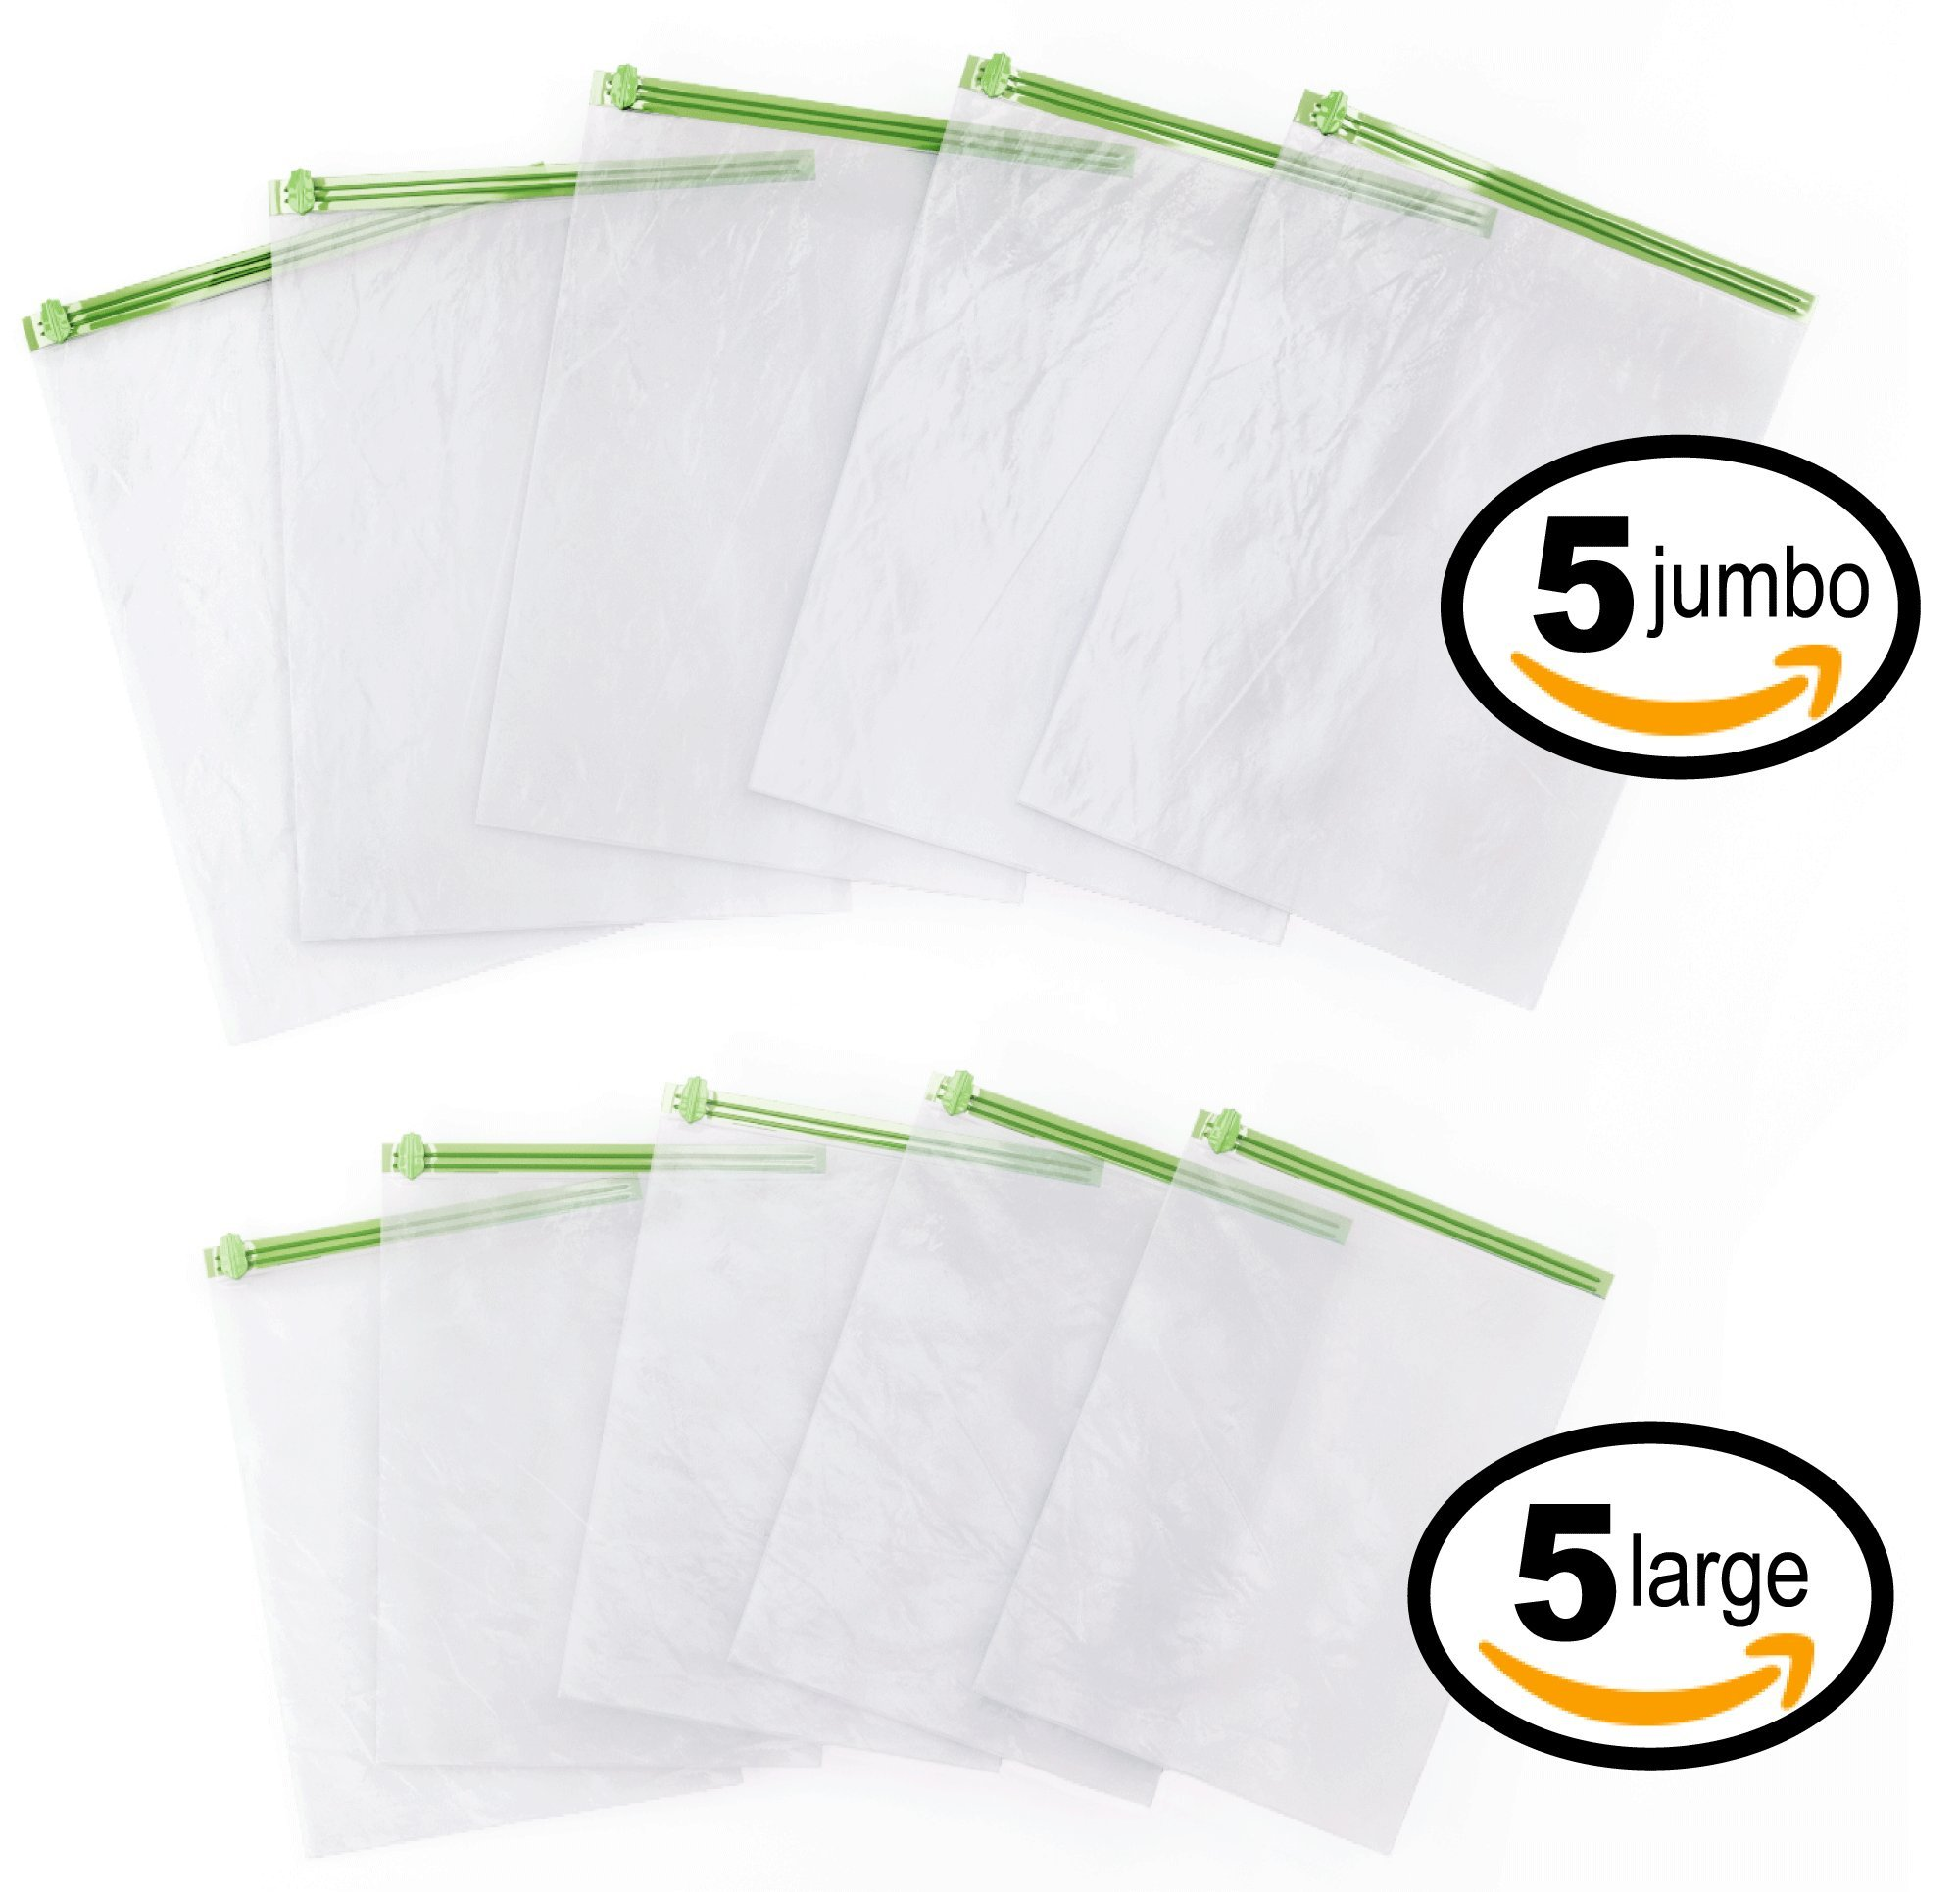 Acrodo Space Saver Packing Bags for Travel - 10-pack Rolling Compression Bags for Clothing by Acrodo (Image #3)